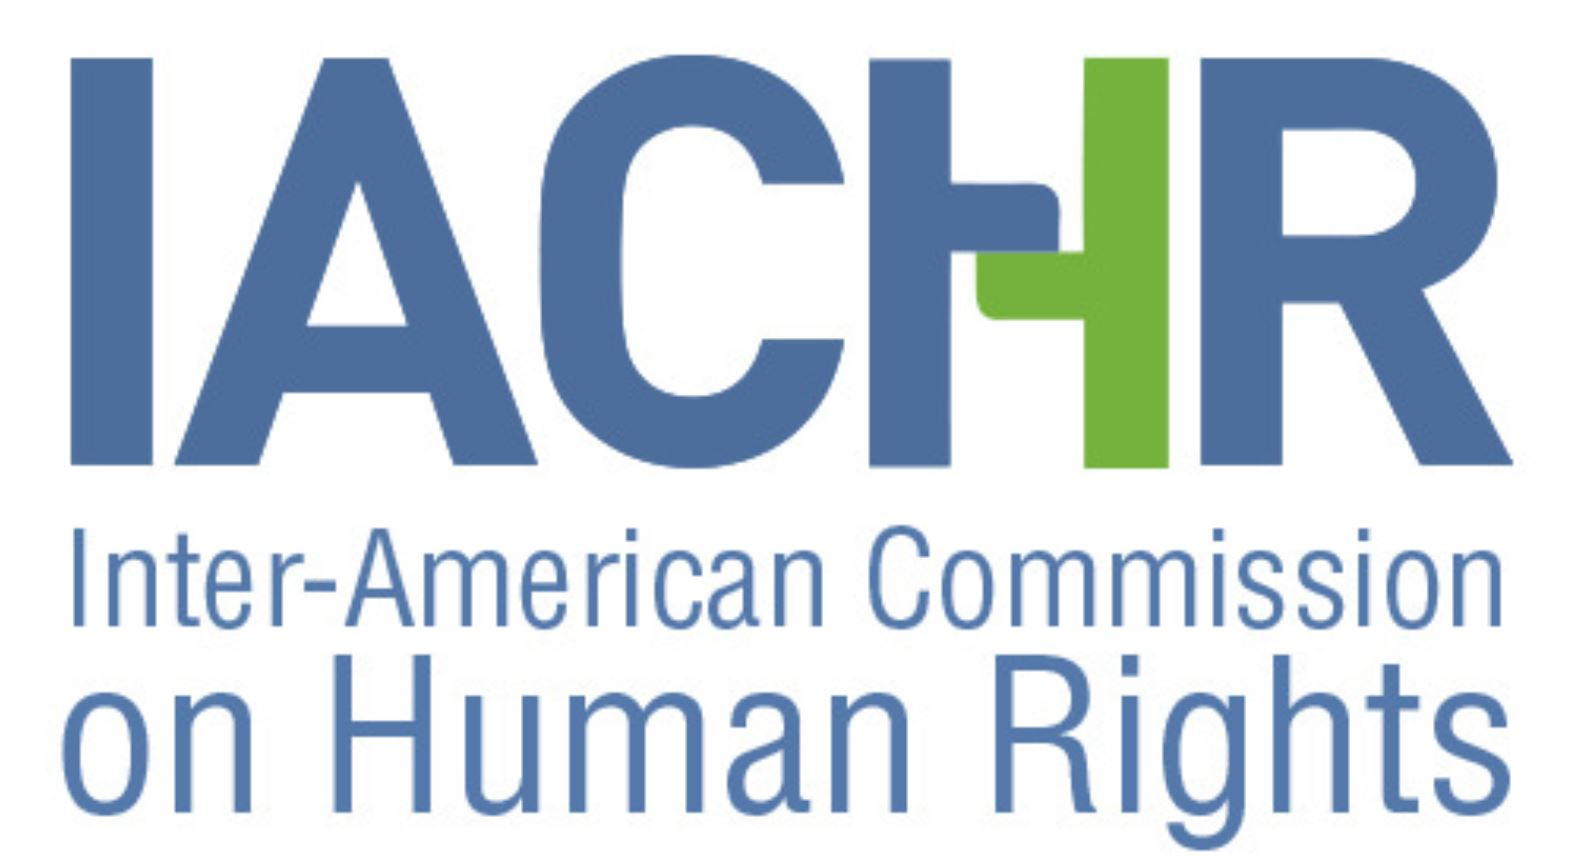 Inter-American Commission on Human Rights logo